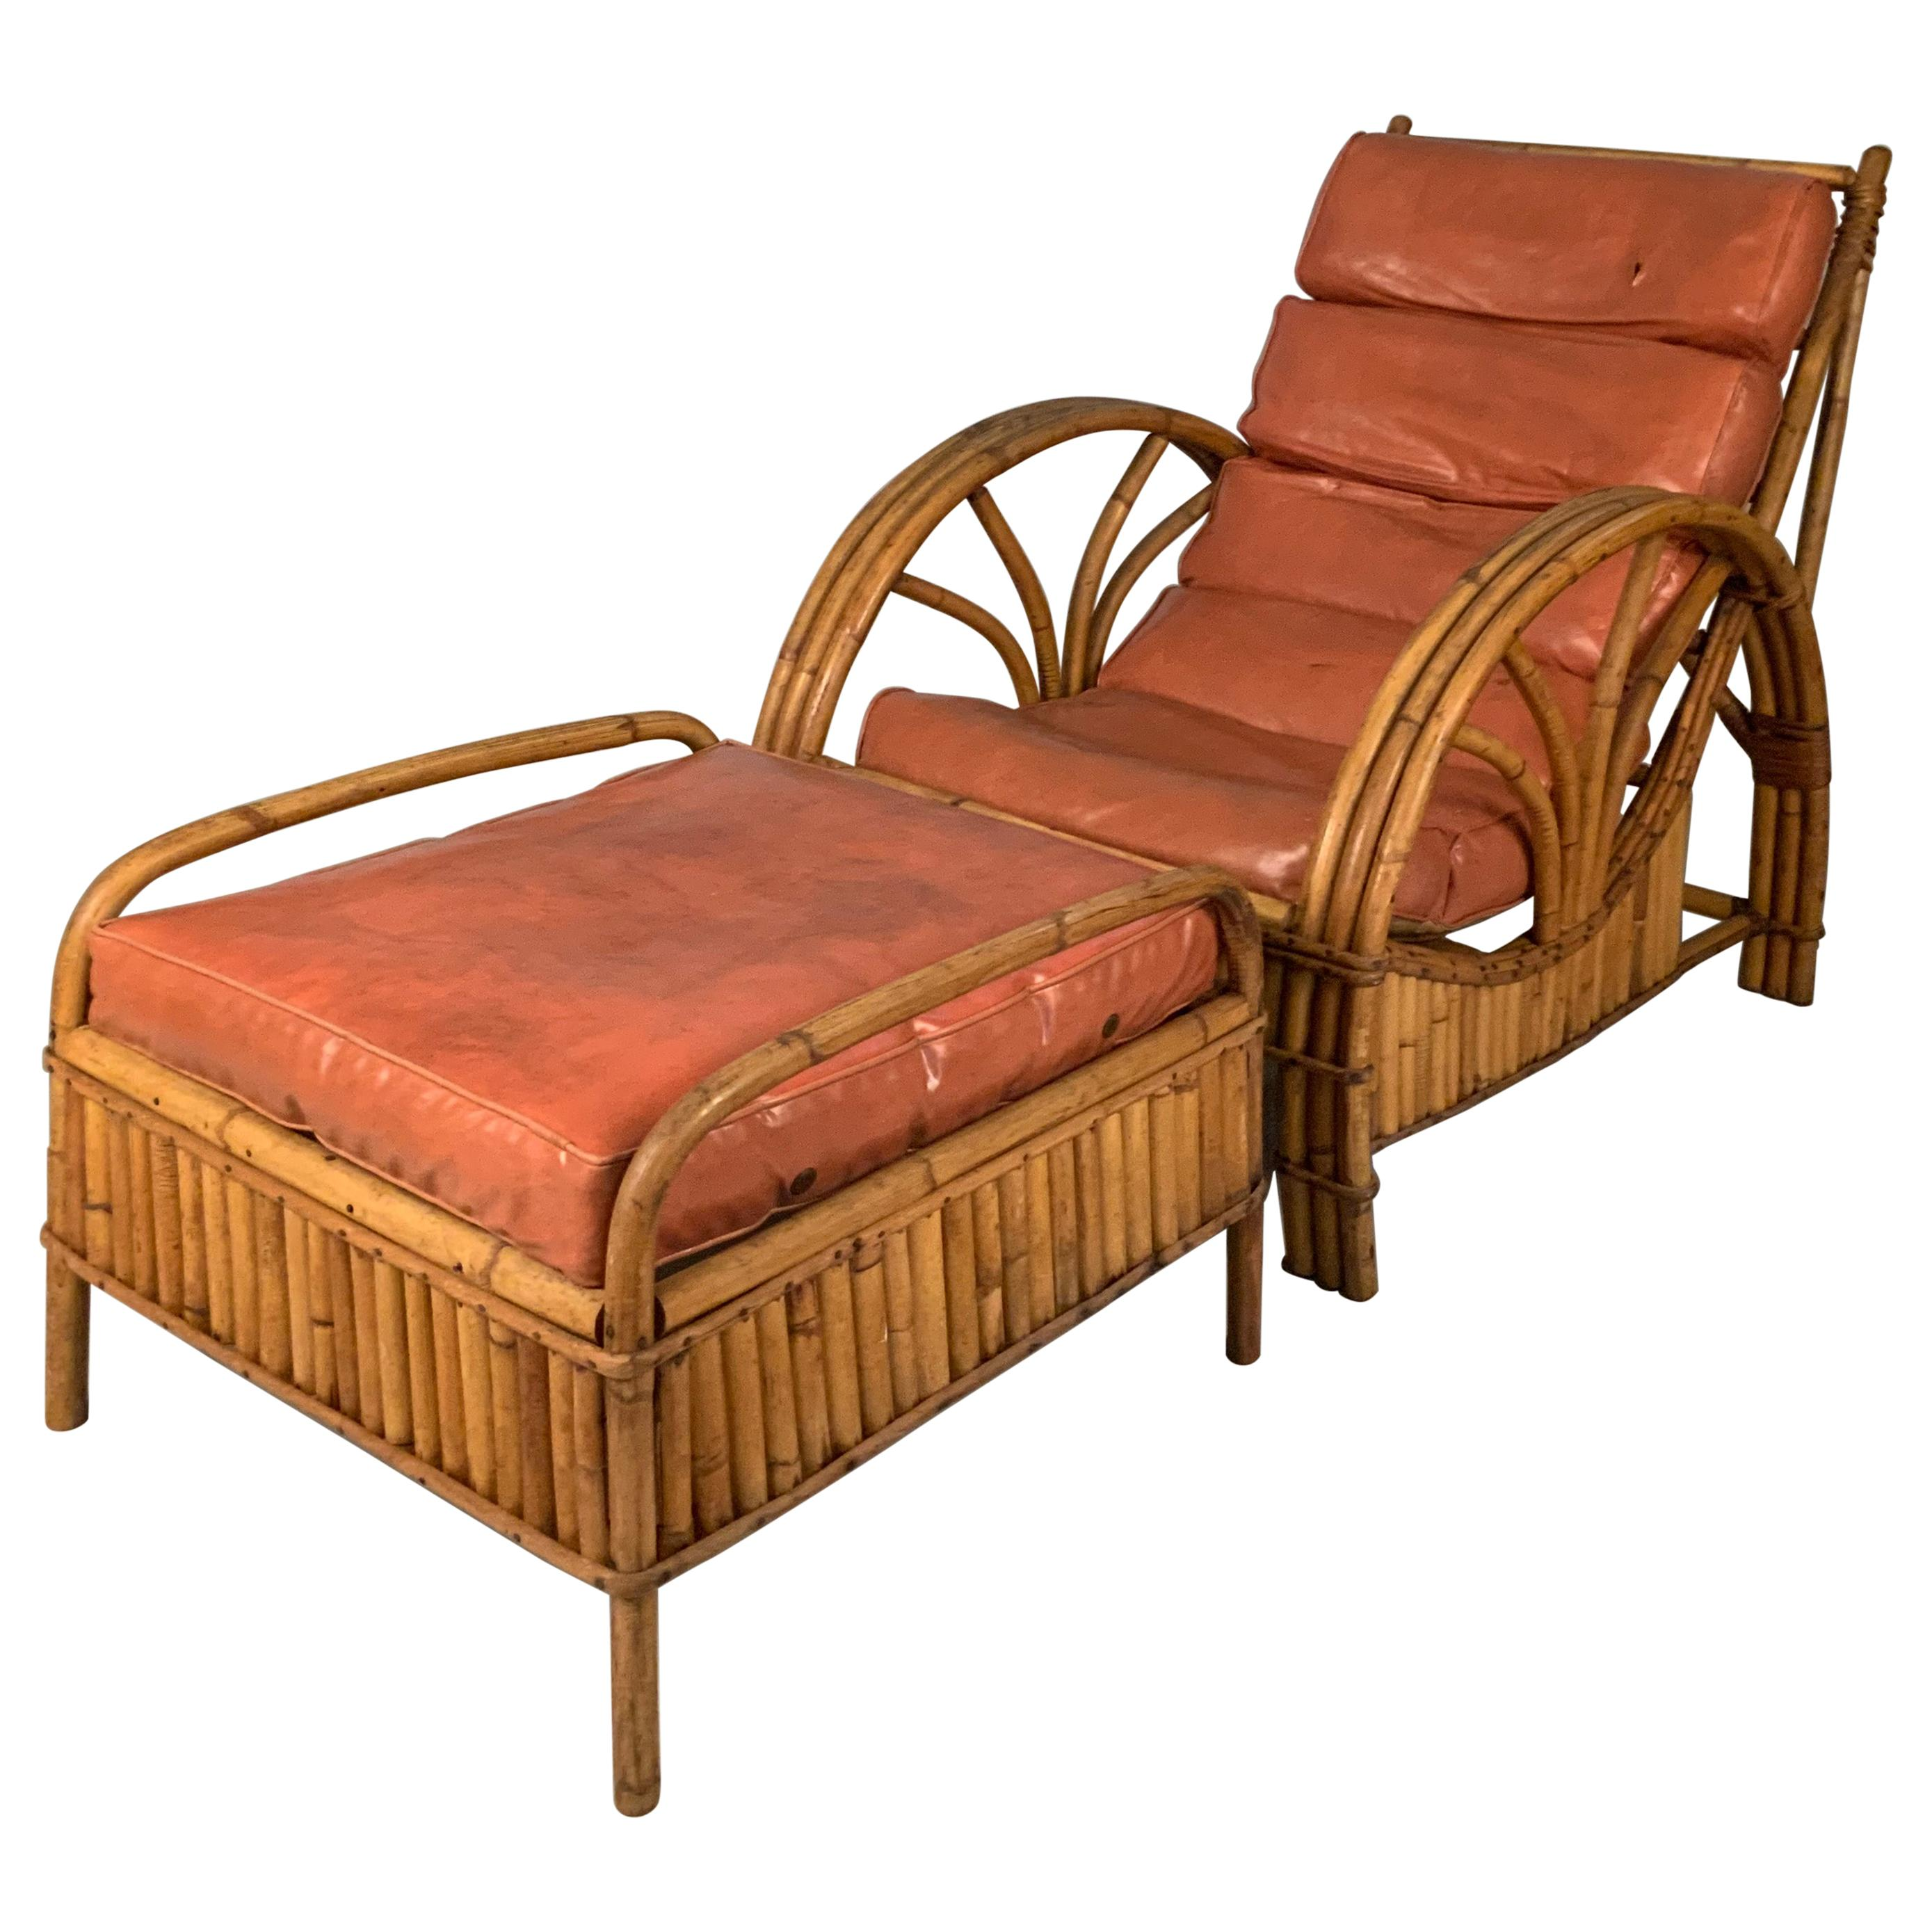 Vintage 1940's Reeded Rattan Lounge Chair & Ottoman